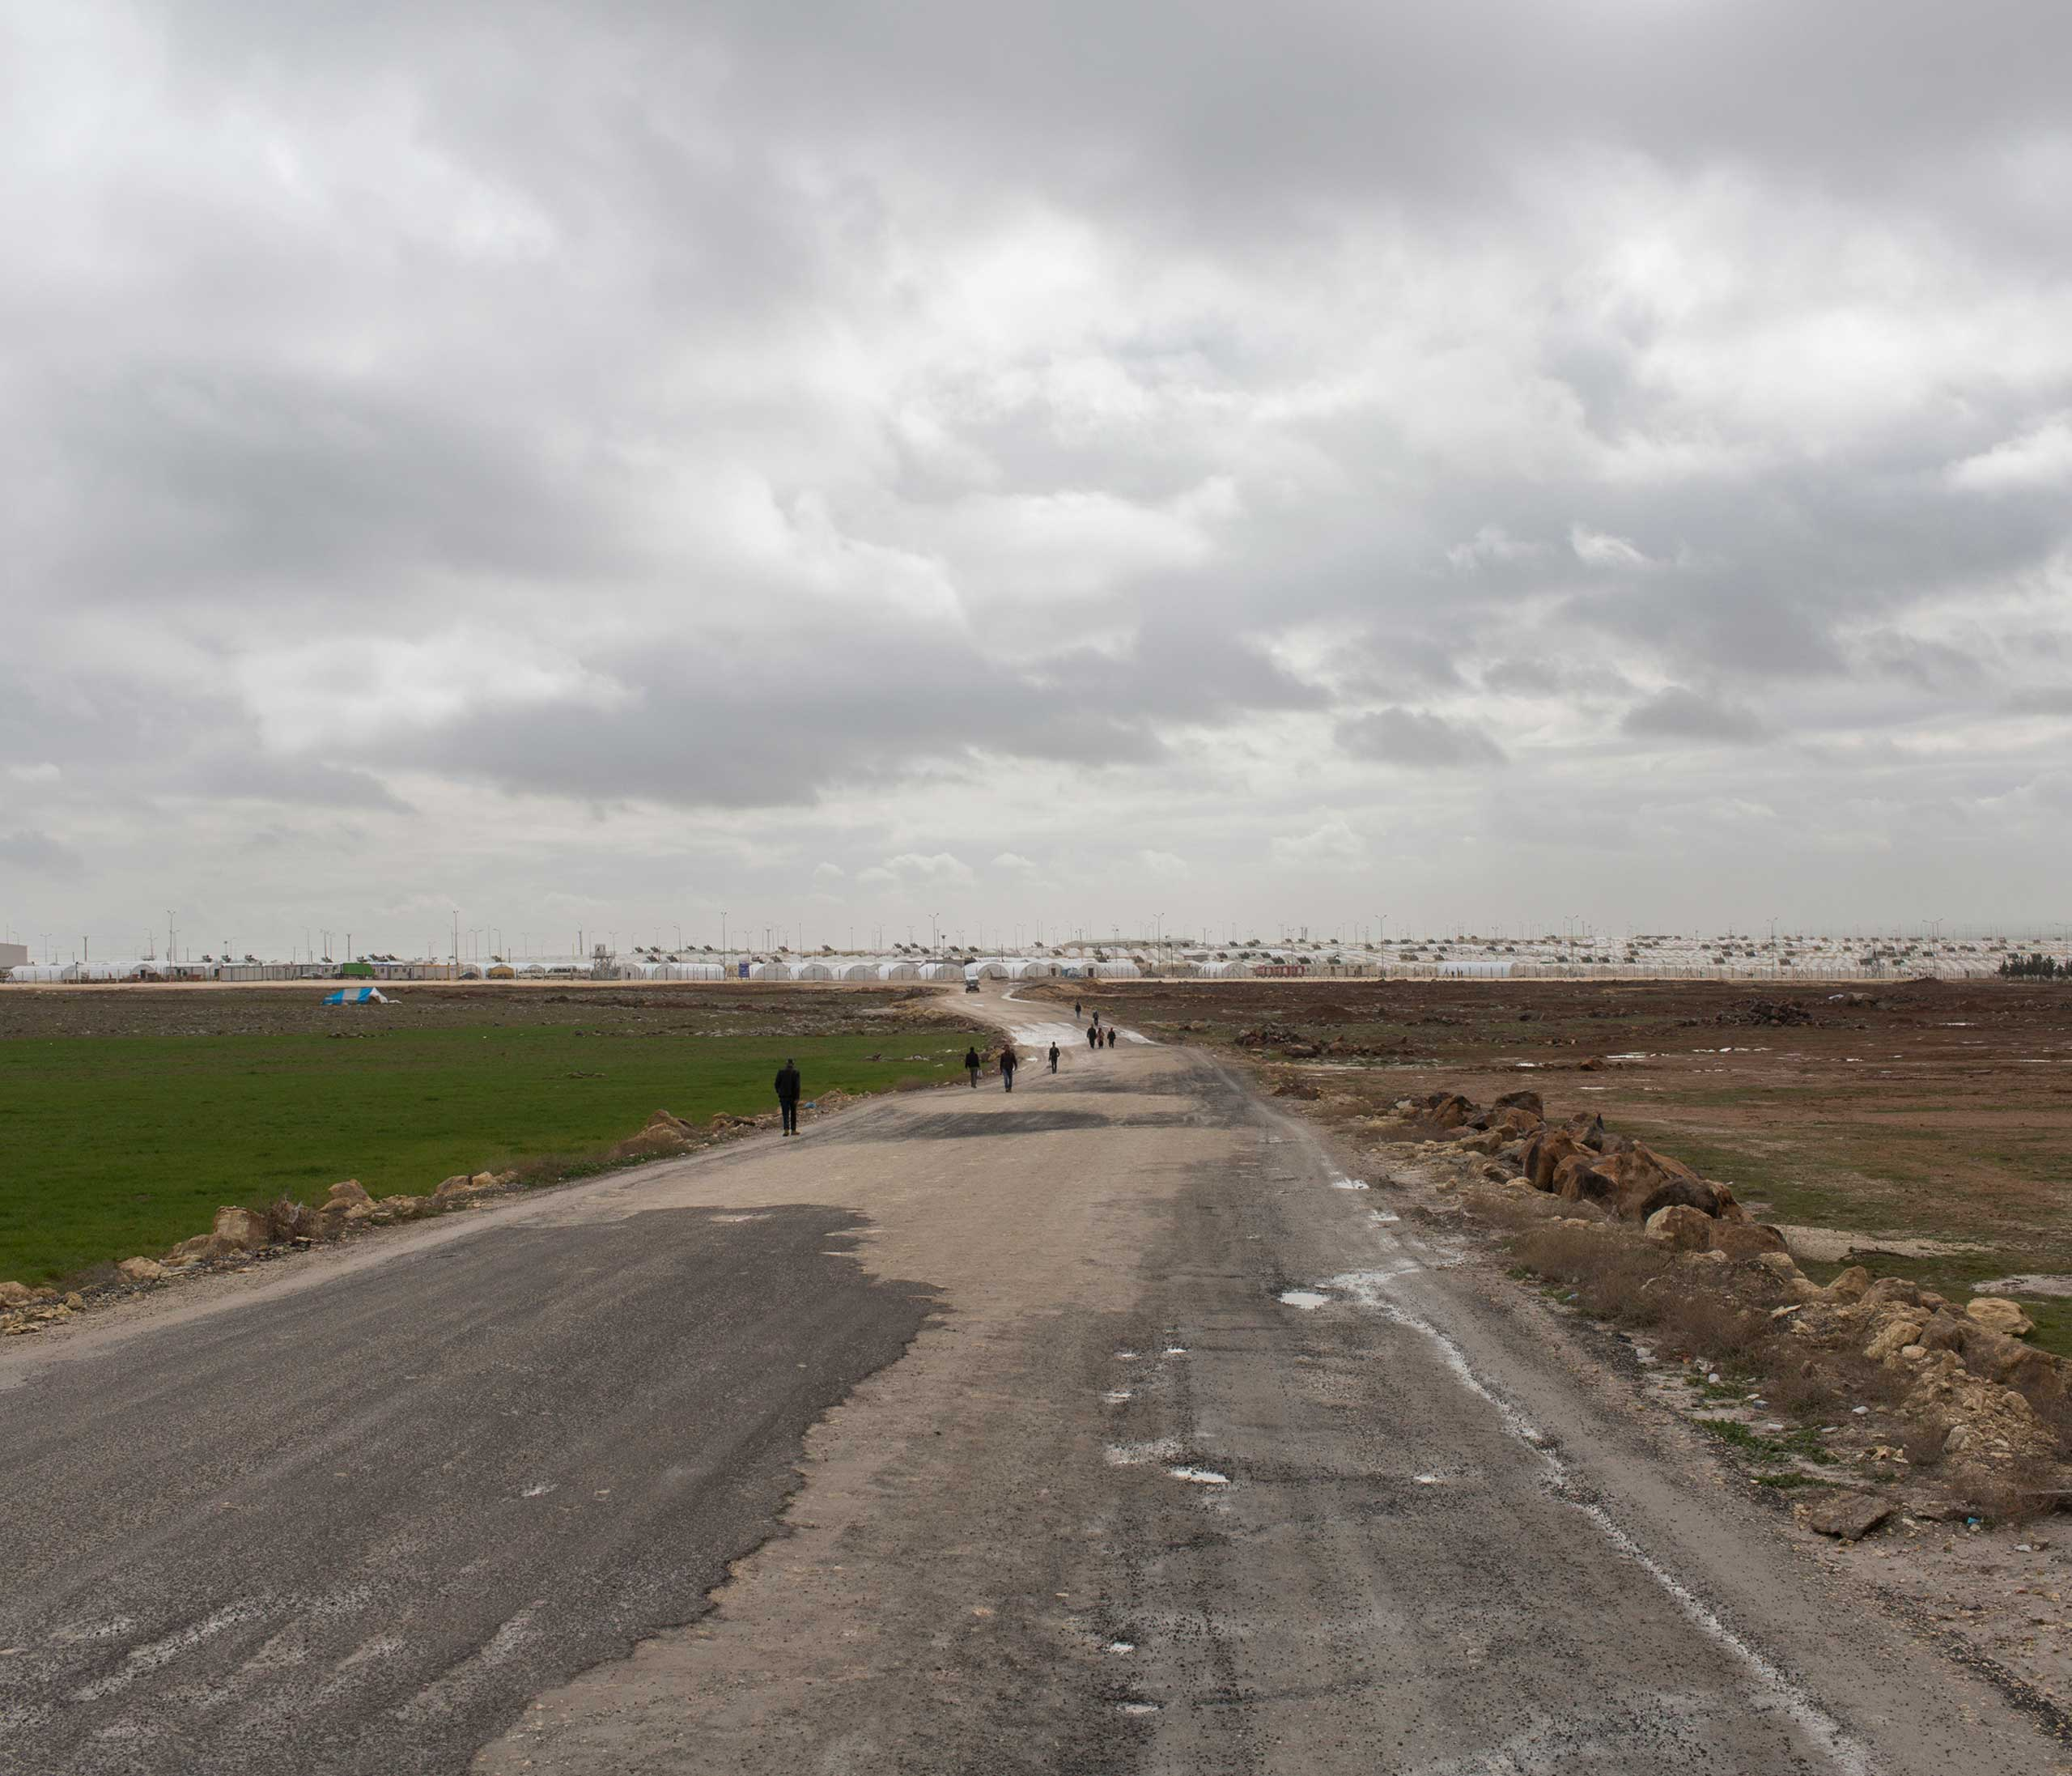 Syrian refugees file in and out of Suruc camp in the South East of Turkey near the border with Syria. Built in the wake of the massive influx of mainly Kurdish Syrian refugees from the nearby Syrian city of Kobane, it is Turkey's largest camp with a capacity of over 30,000. Feb. 2015.